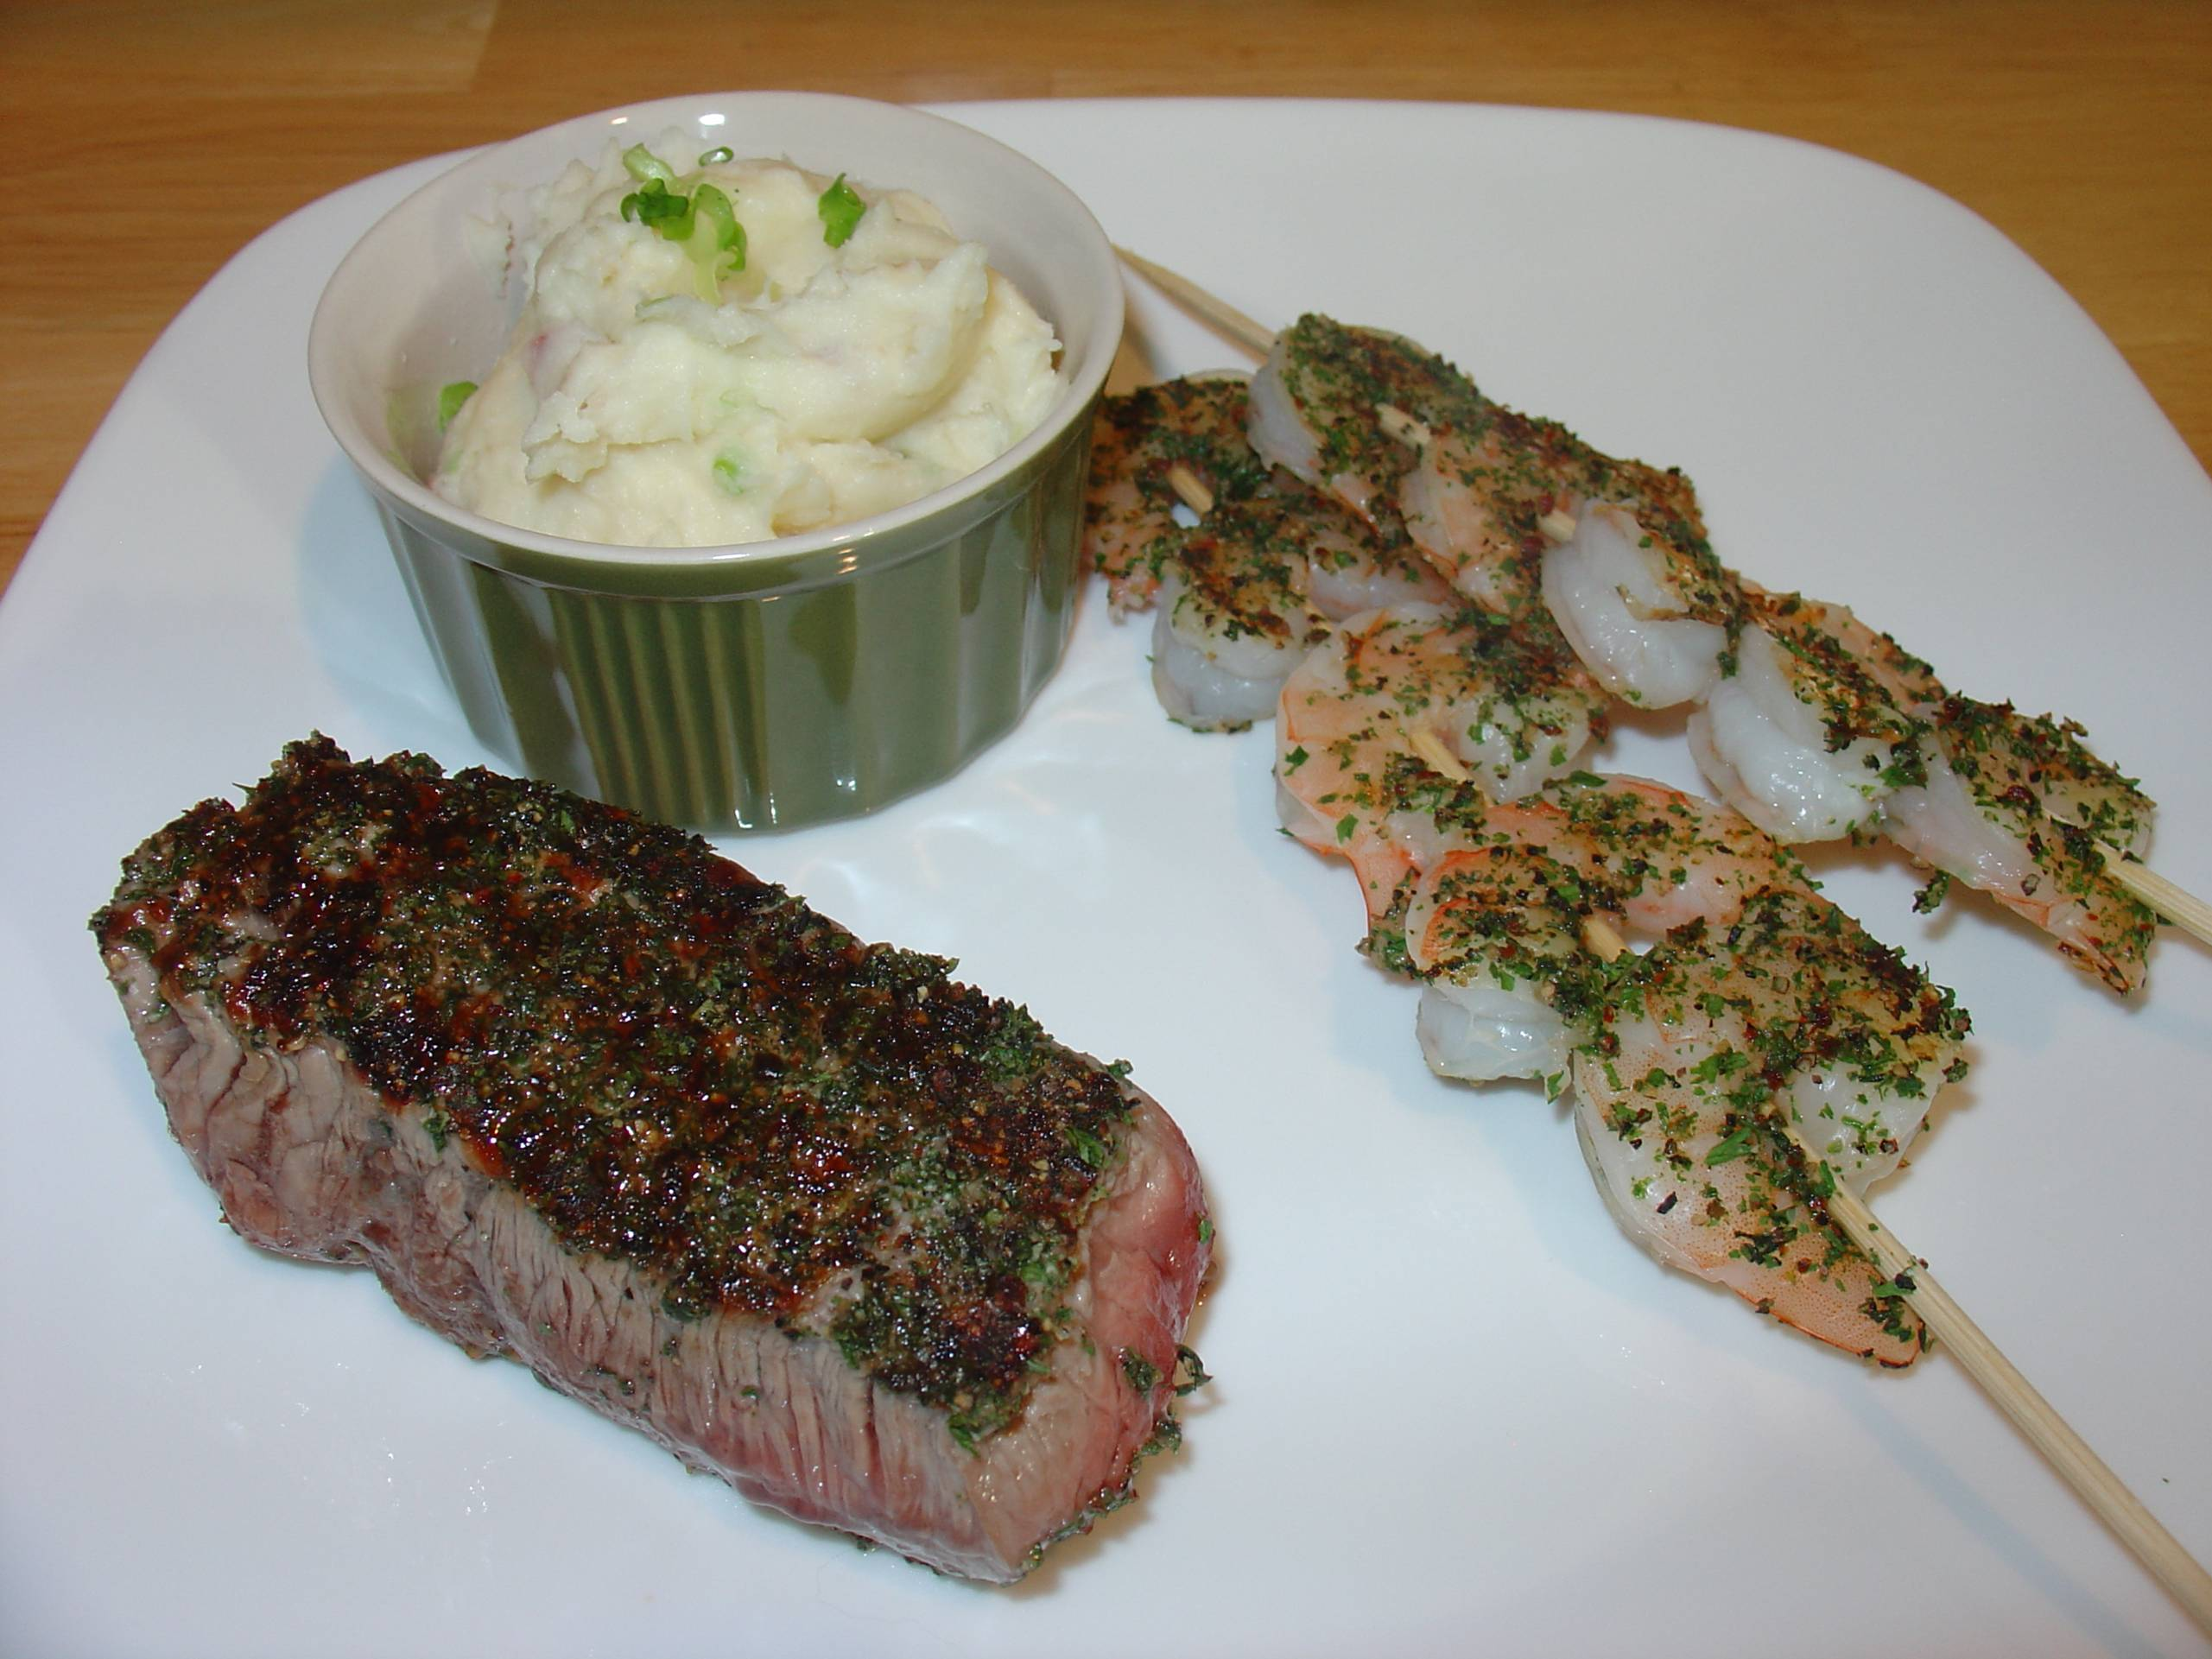 Herb Coated Surf and Turf